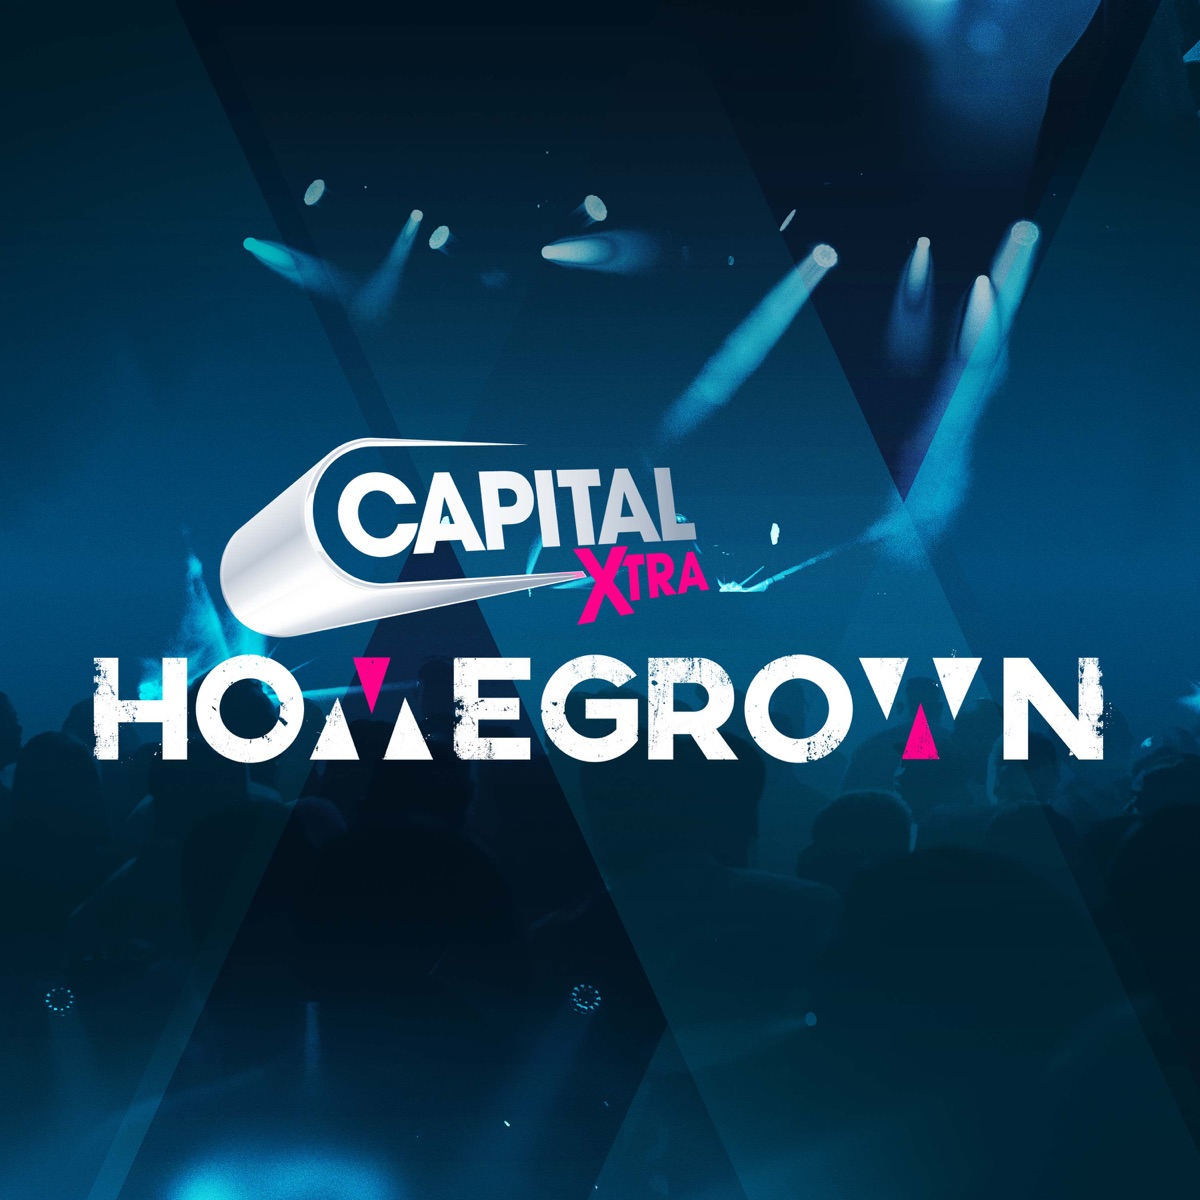 Capital XTRA Homegrown: The Podcast